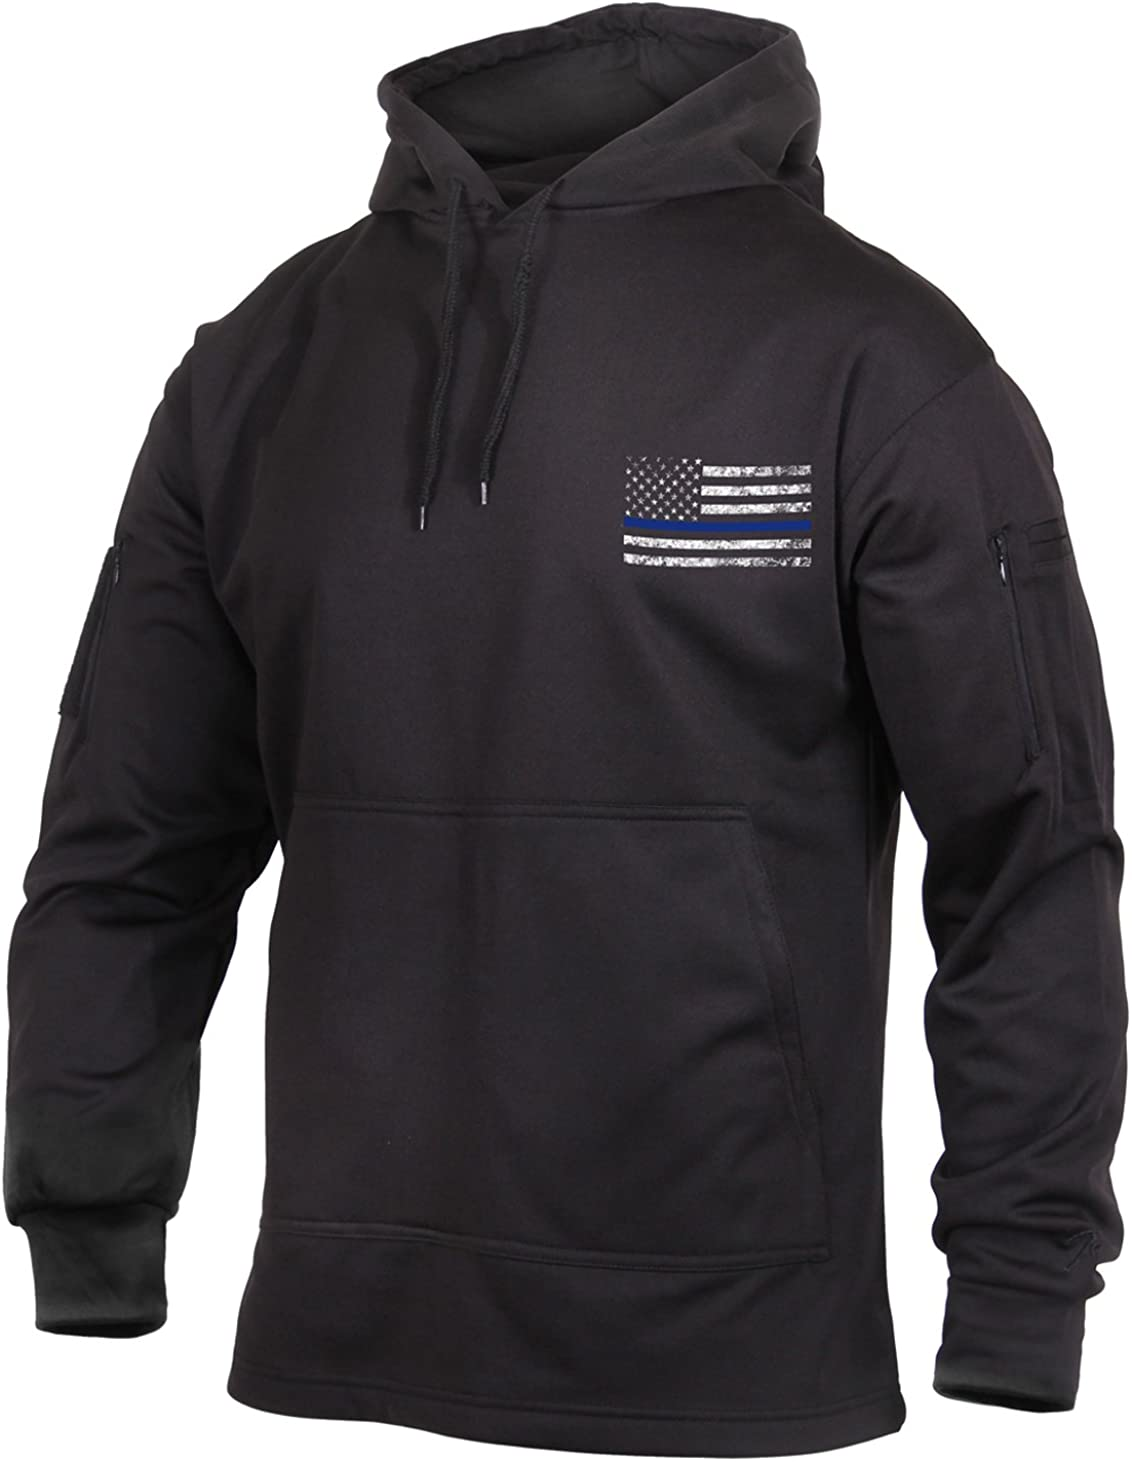 Rothco Thin Blue Line Concealed Carry Hoodie: Clothing